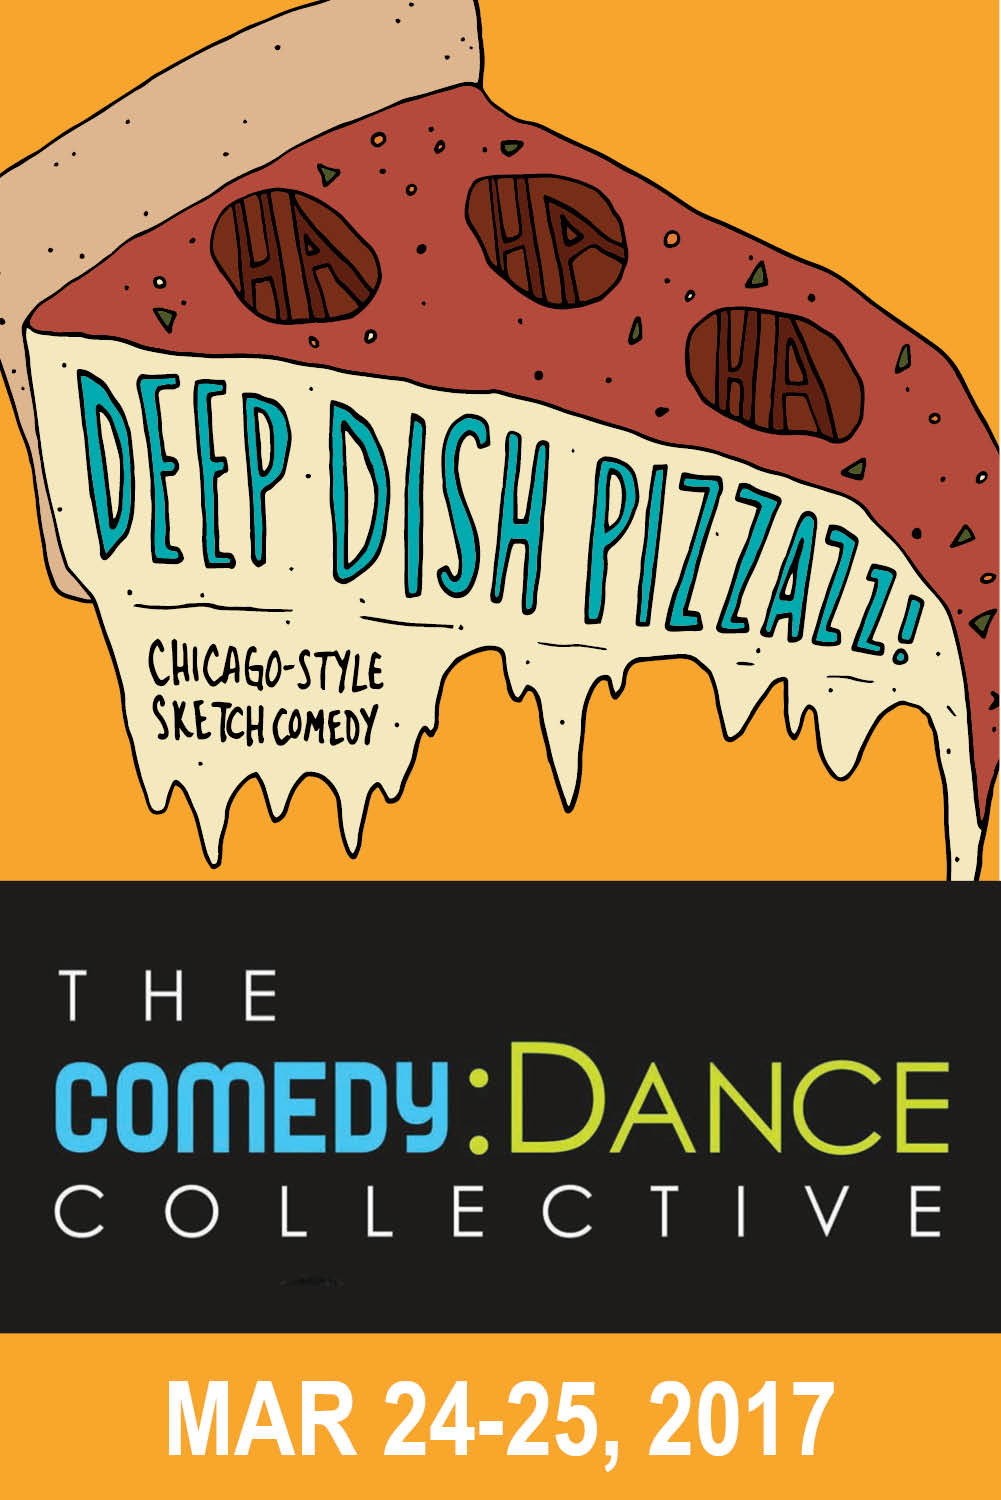 Deep Dish Pizzazz: Chicago-Style Comedy!